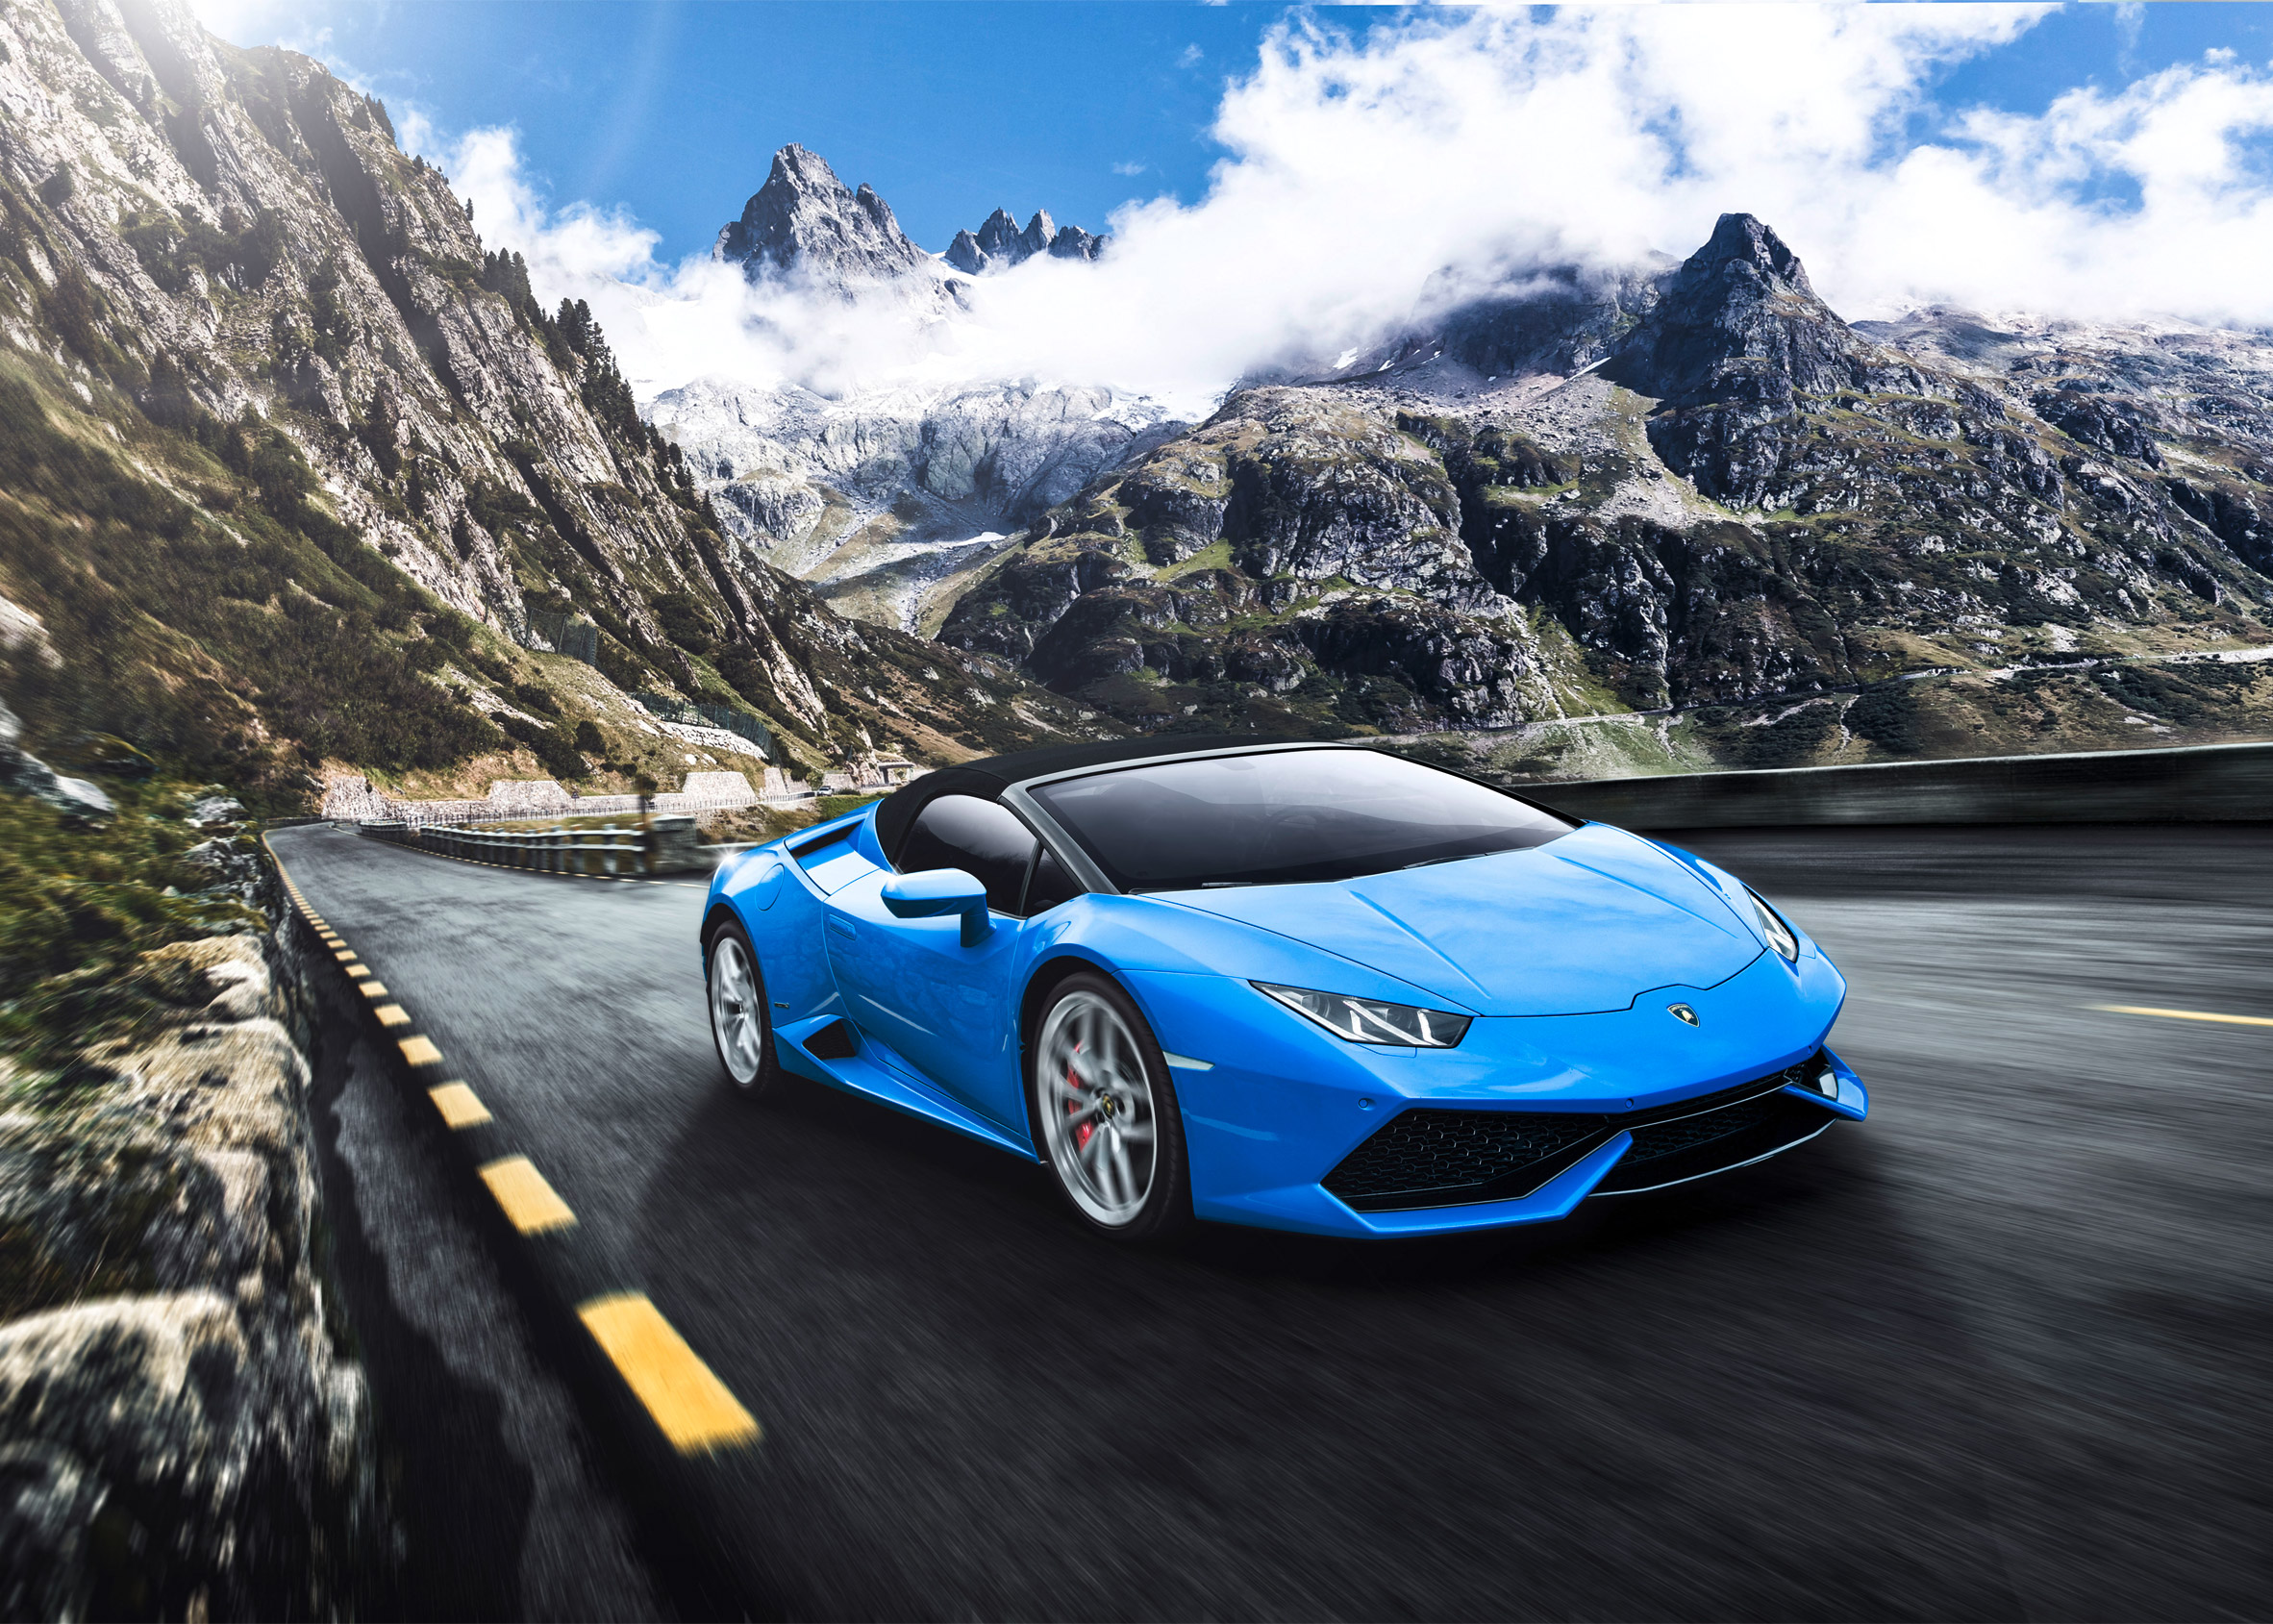 YAC'S Lamborghini Road Monument competition